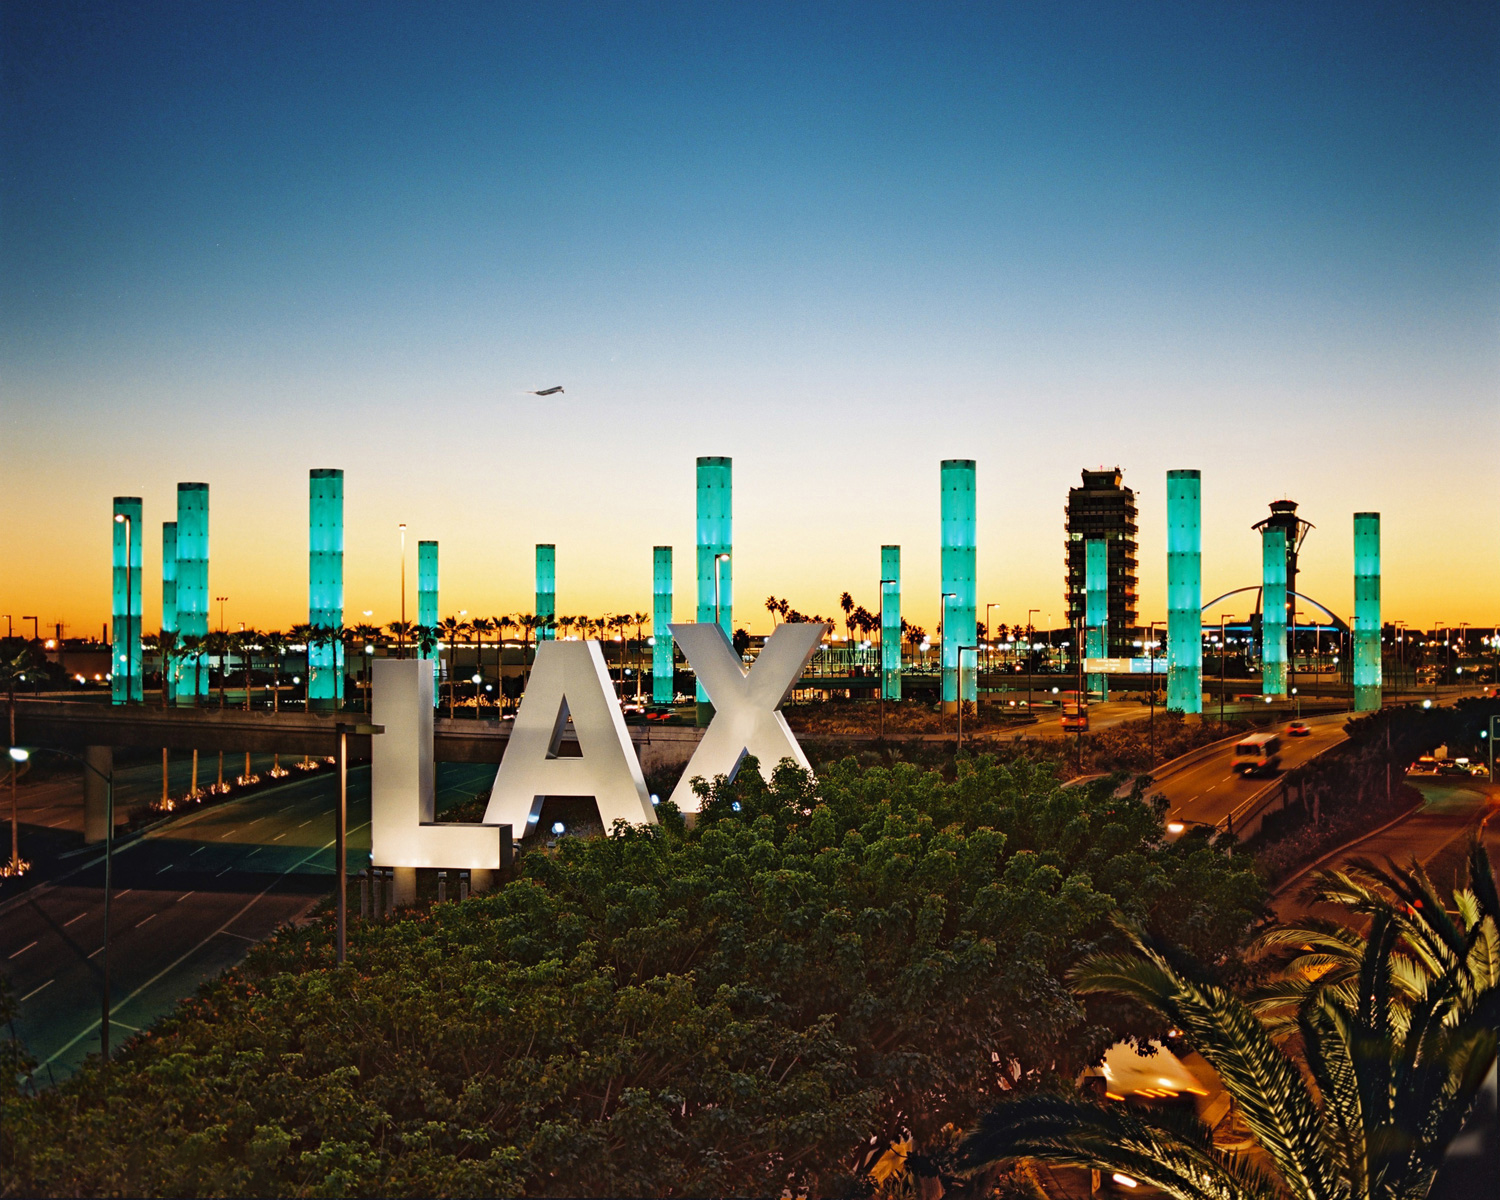 LAX Terminal 2 - Breeze has taken flight at LAX T2.Check us out on your next trip!*Stay tuned. We'll be expanding soon.